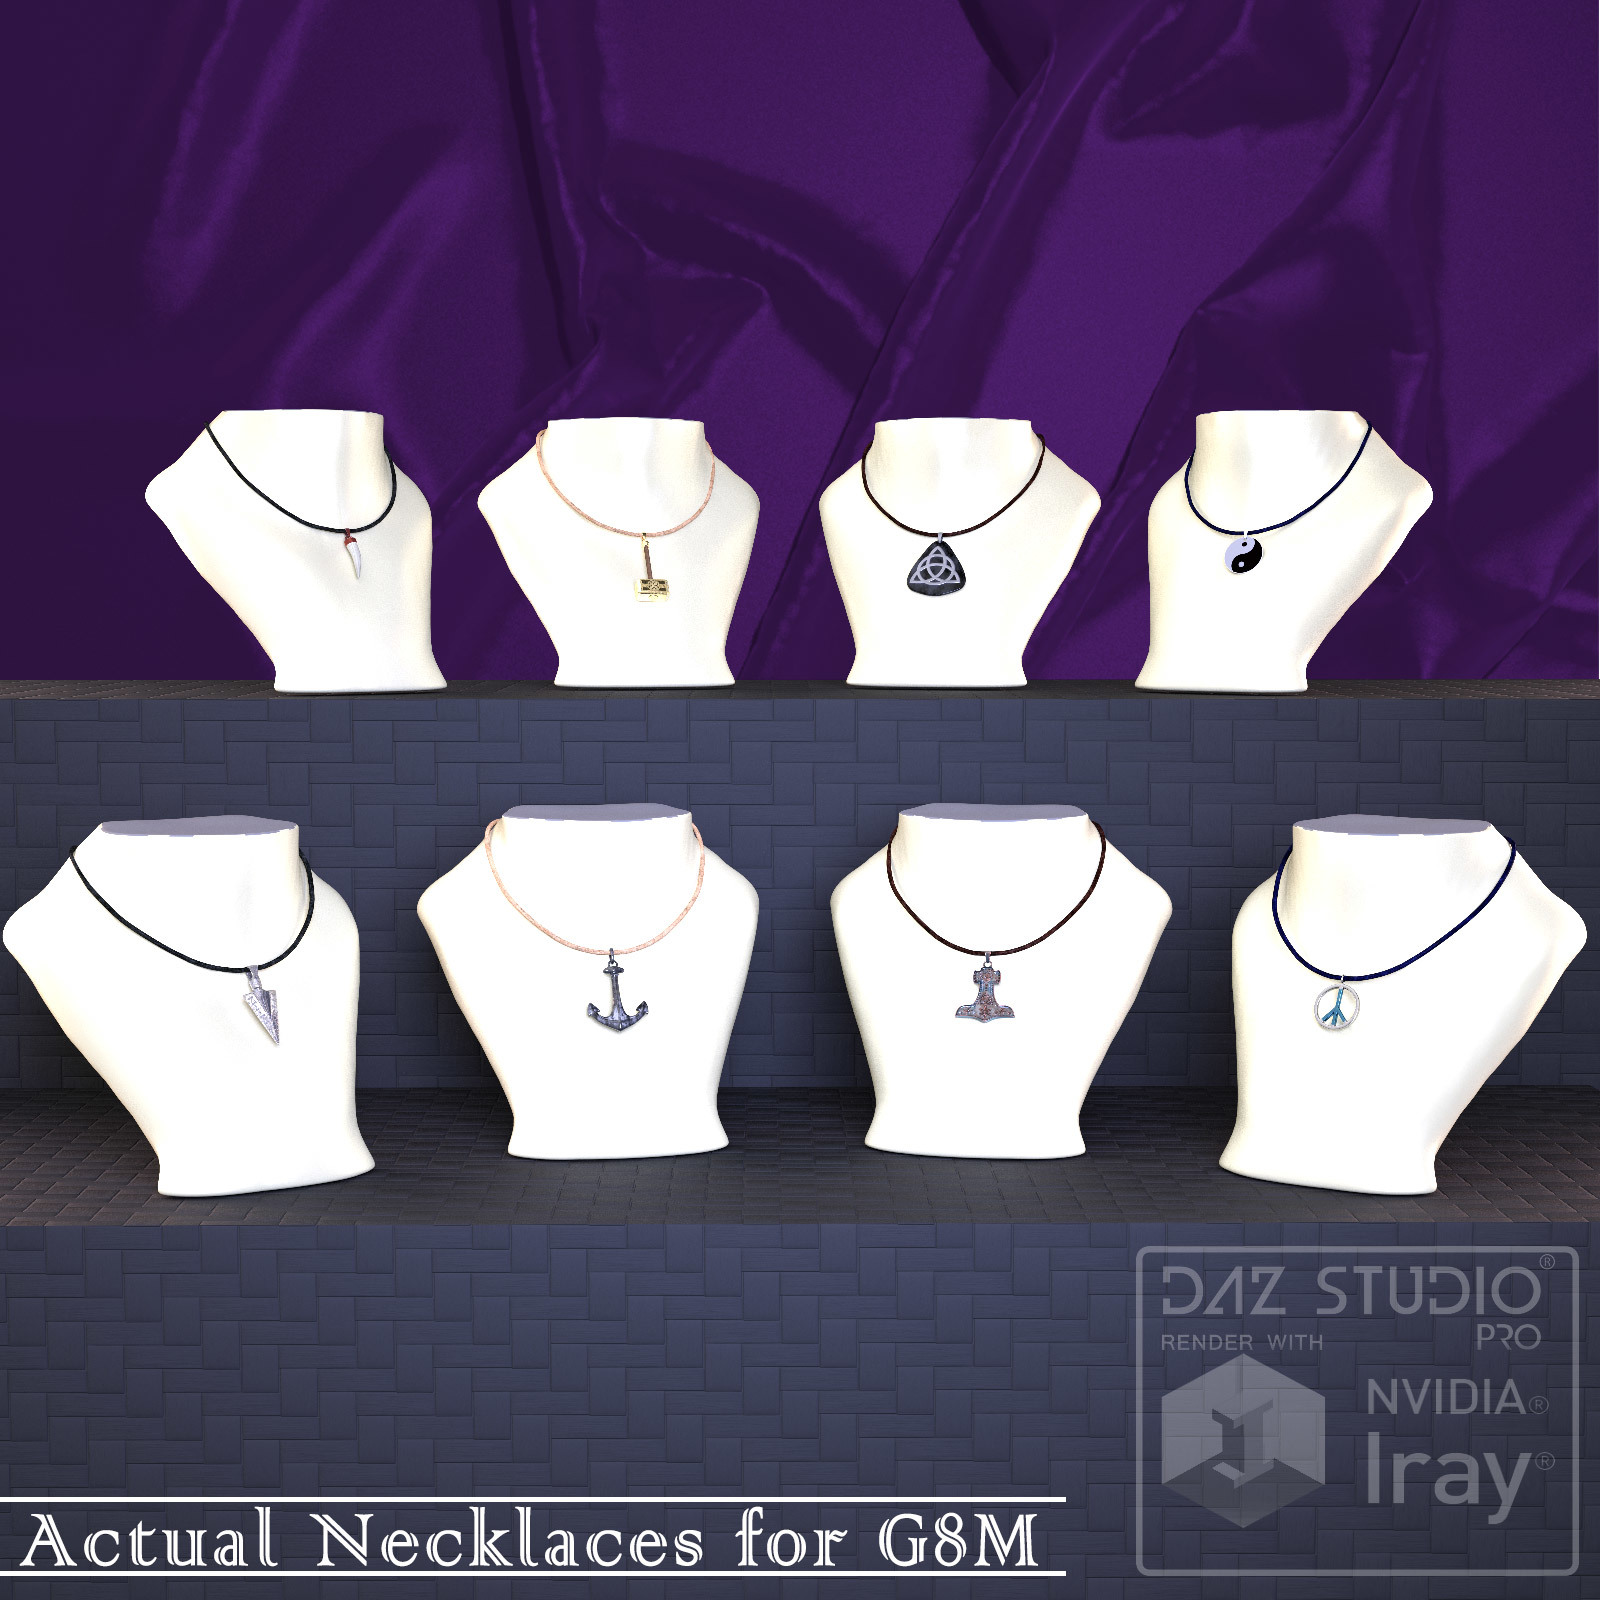 Actual Necklaces for G8M